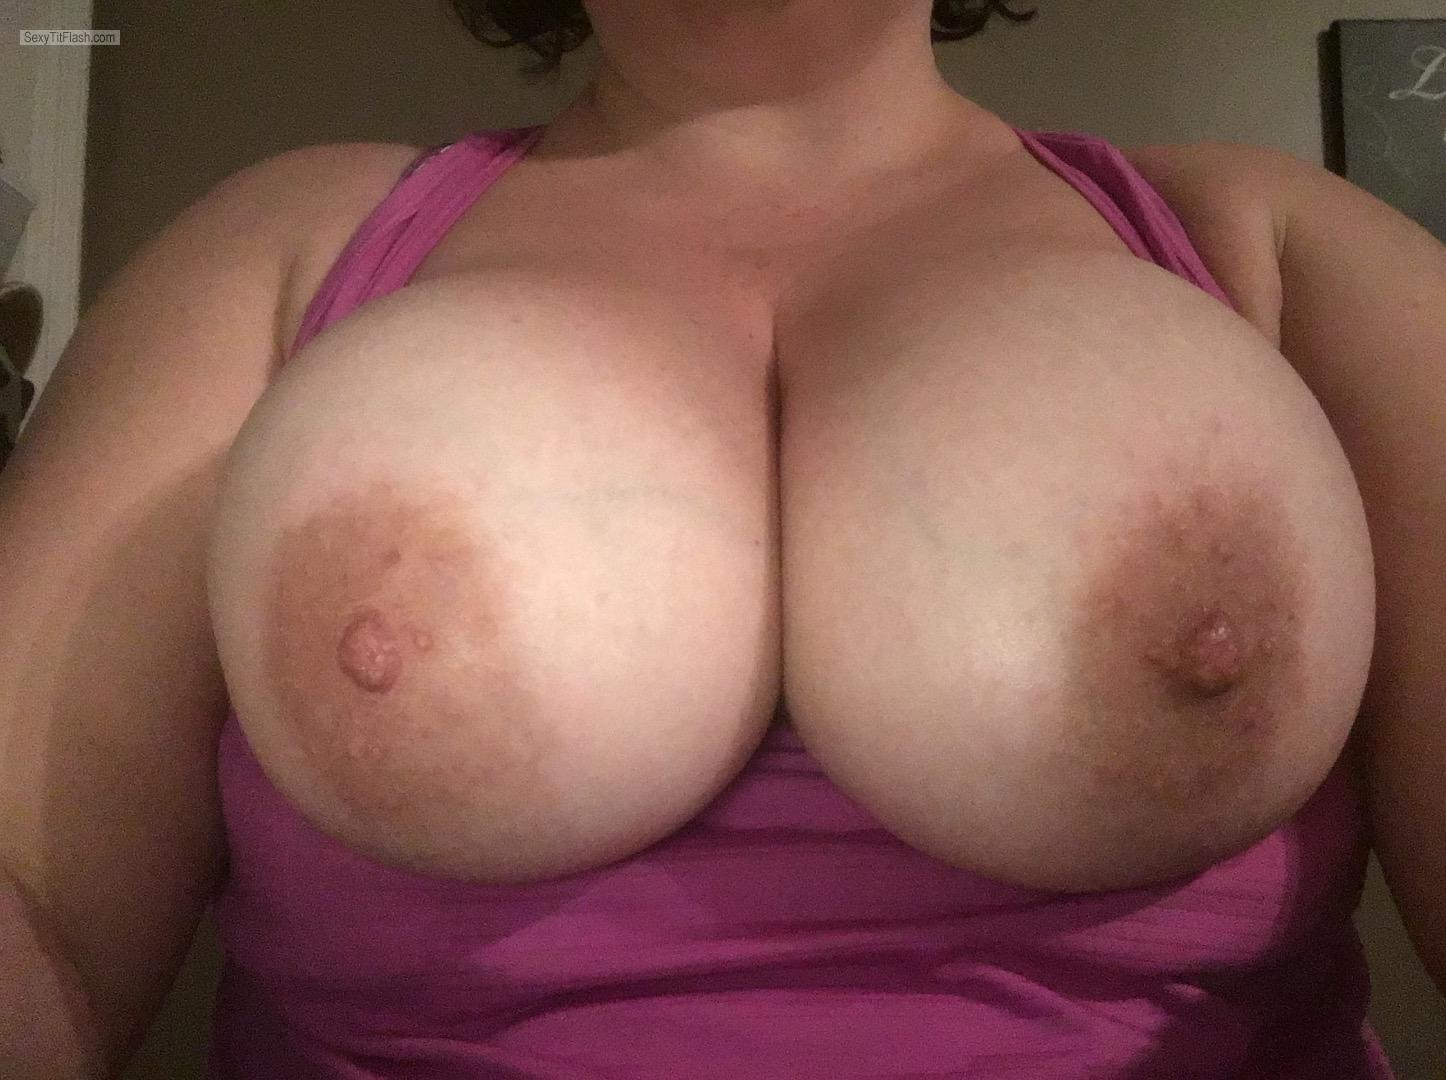 Tit Flash: Wife's Extremely Big Tits (Selfie) - Molly from United States